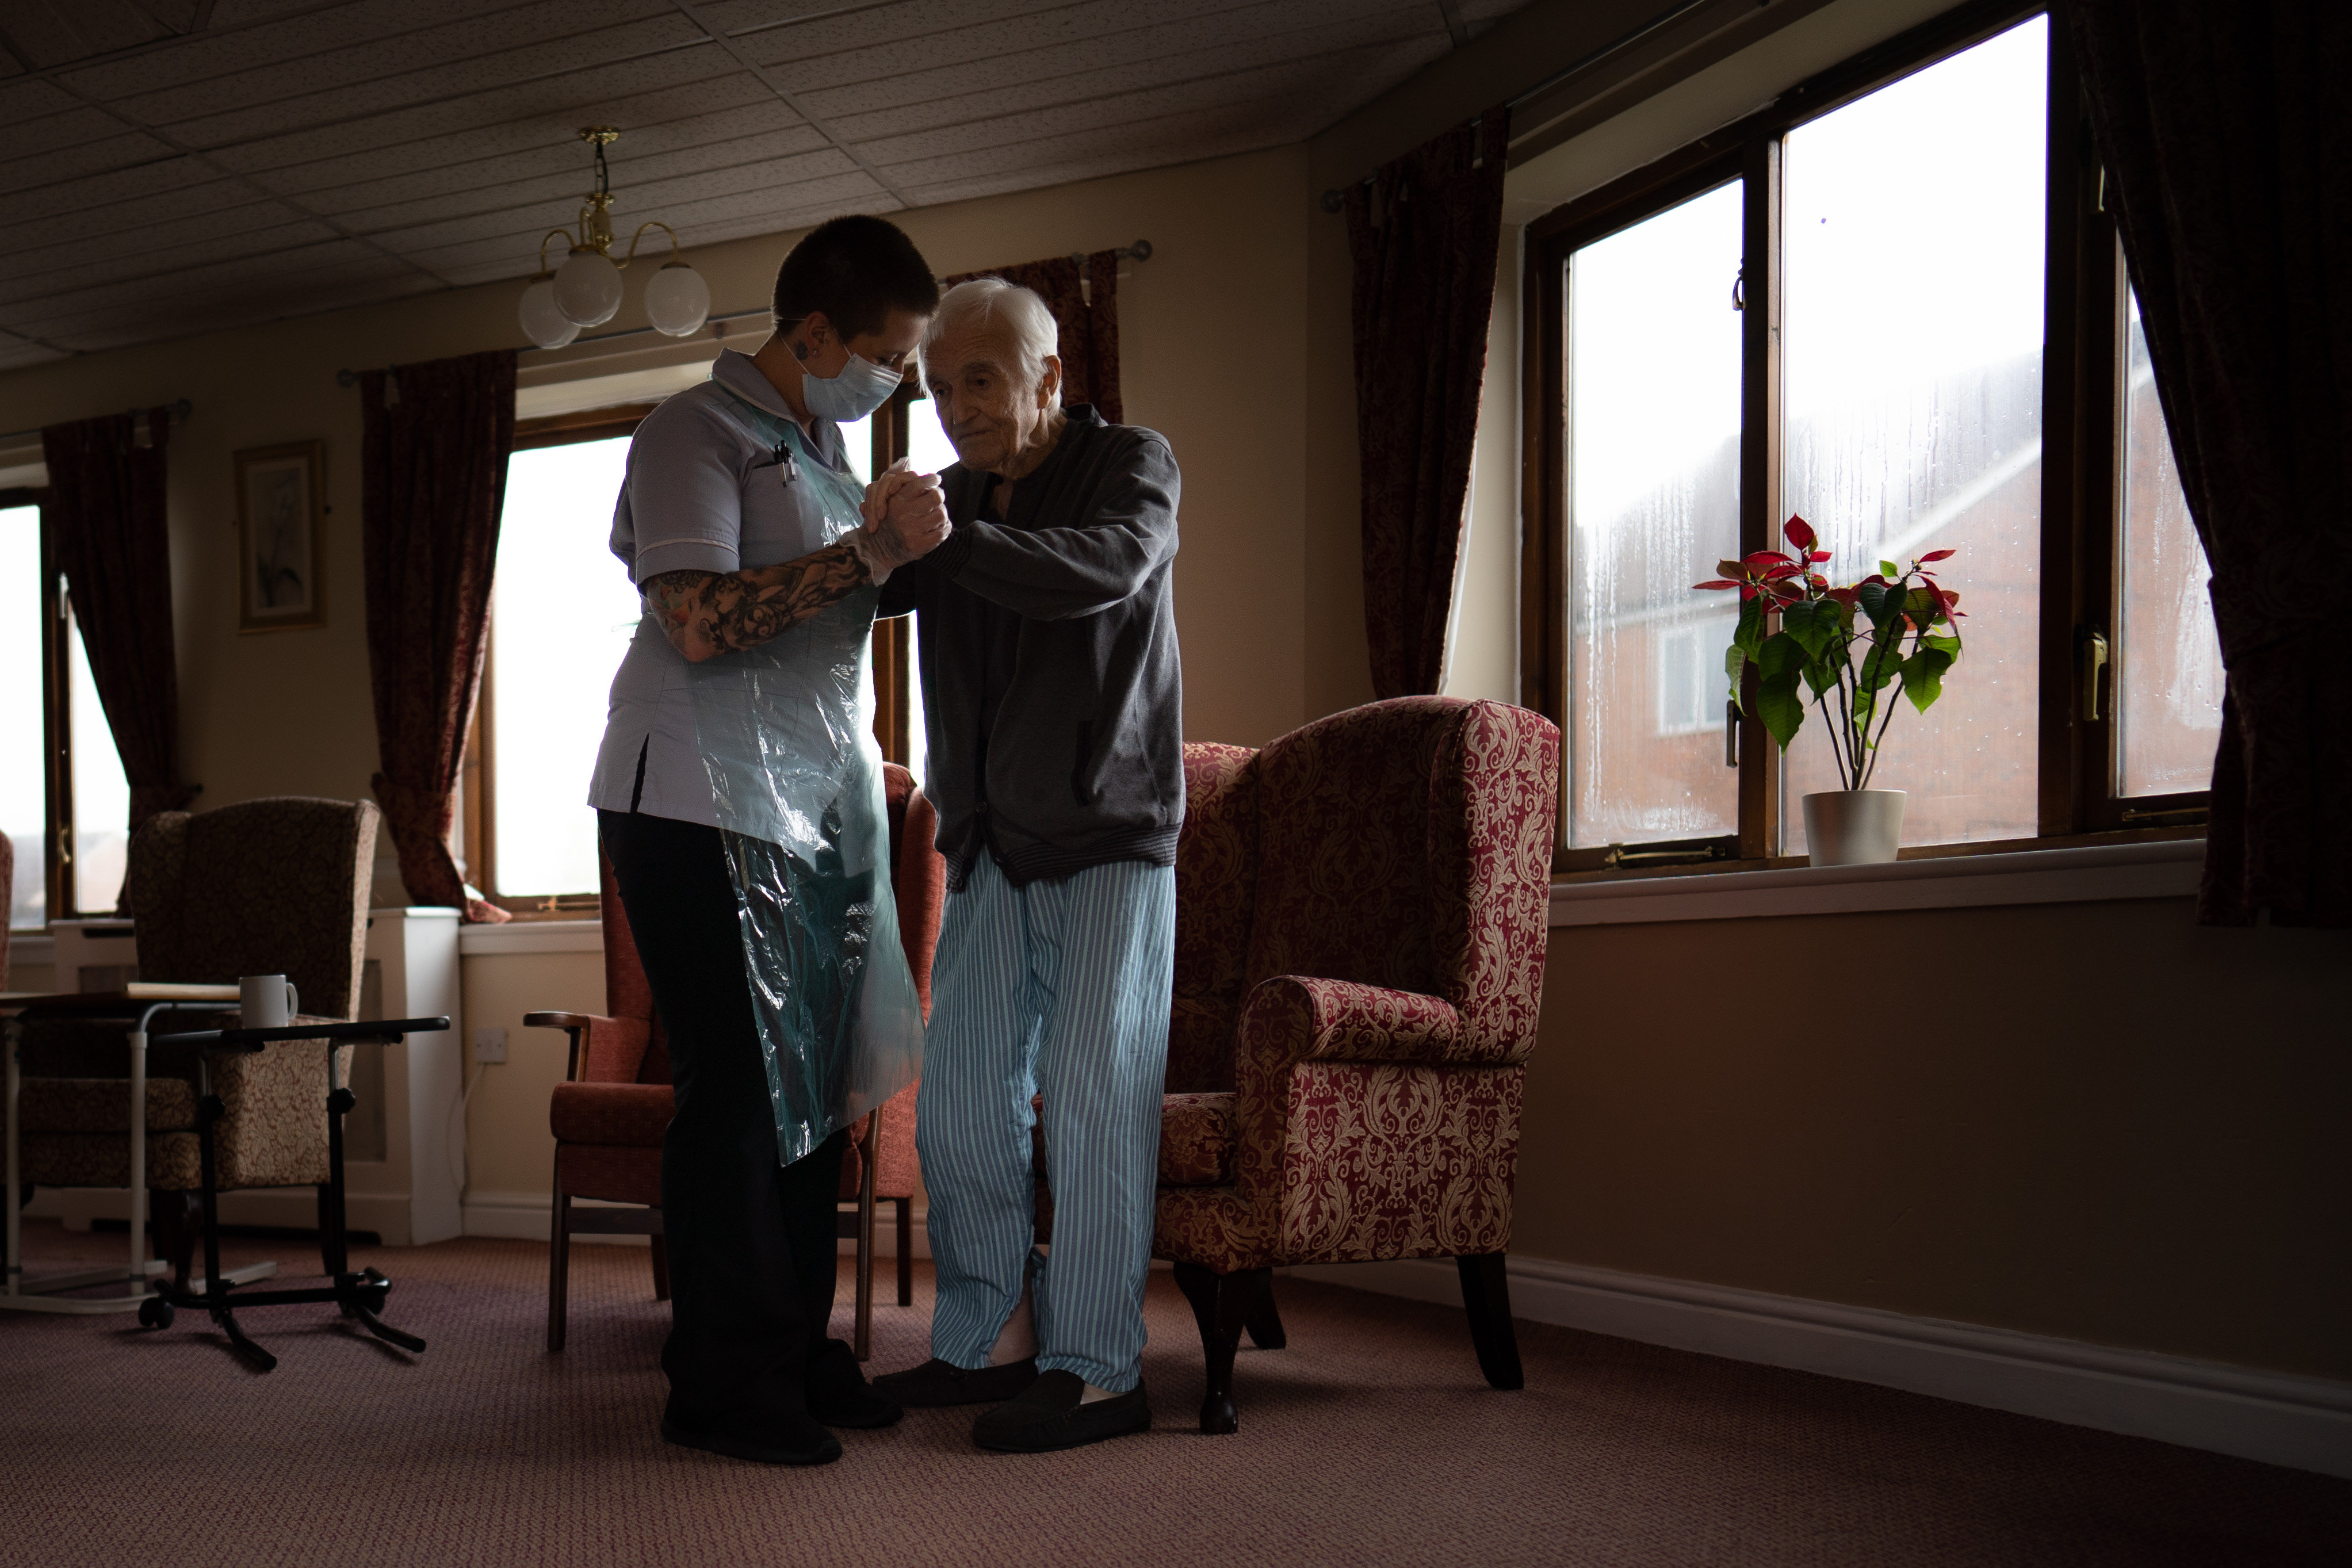 Jack Dodsley, 79, with a carer in PPE at Newfield Nursing Home, Sheffield